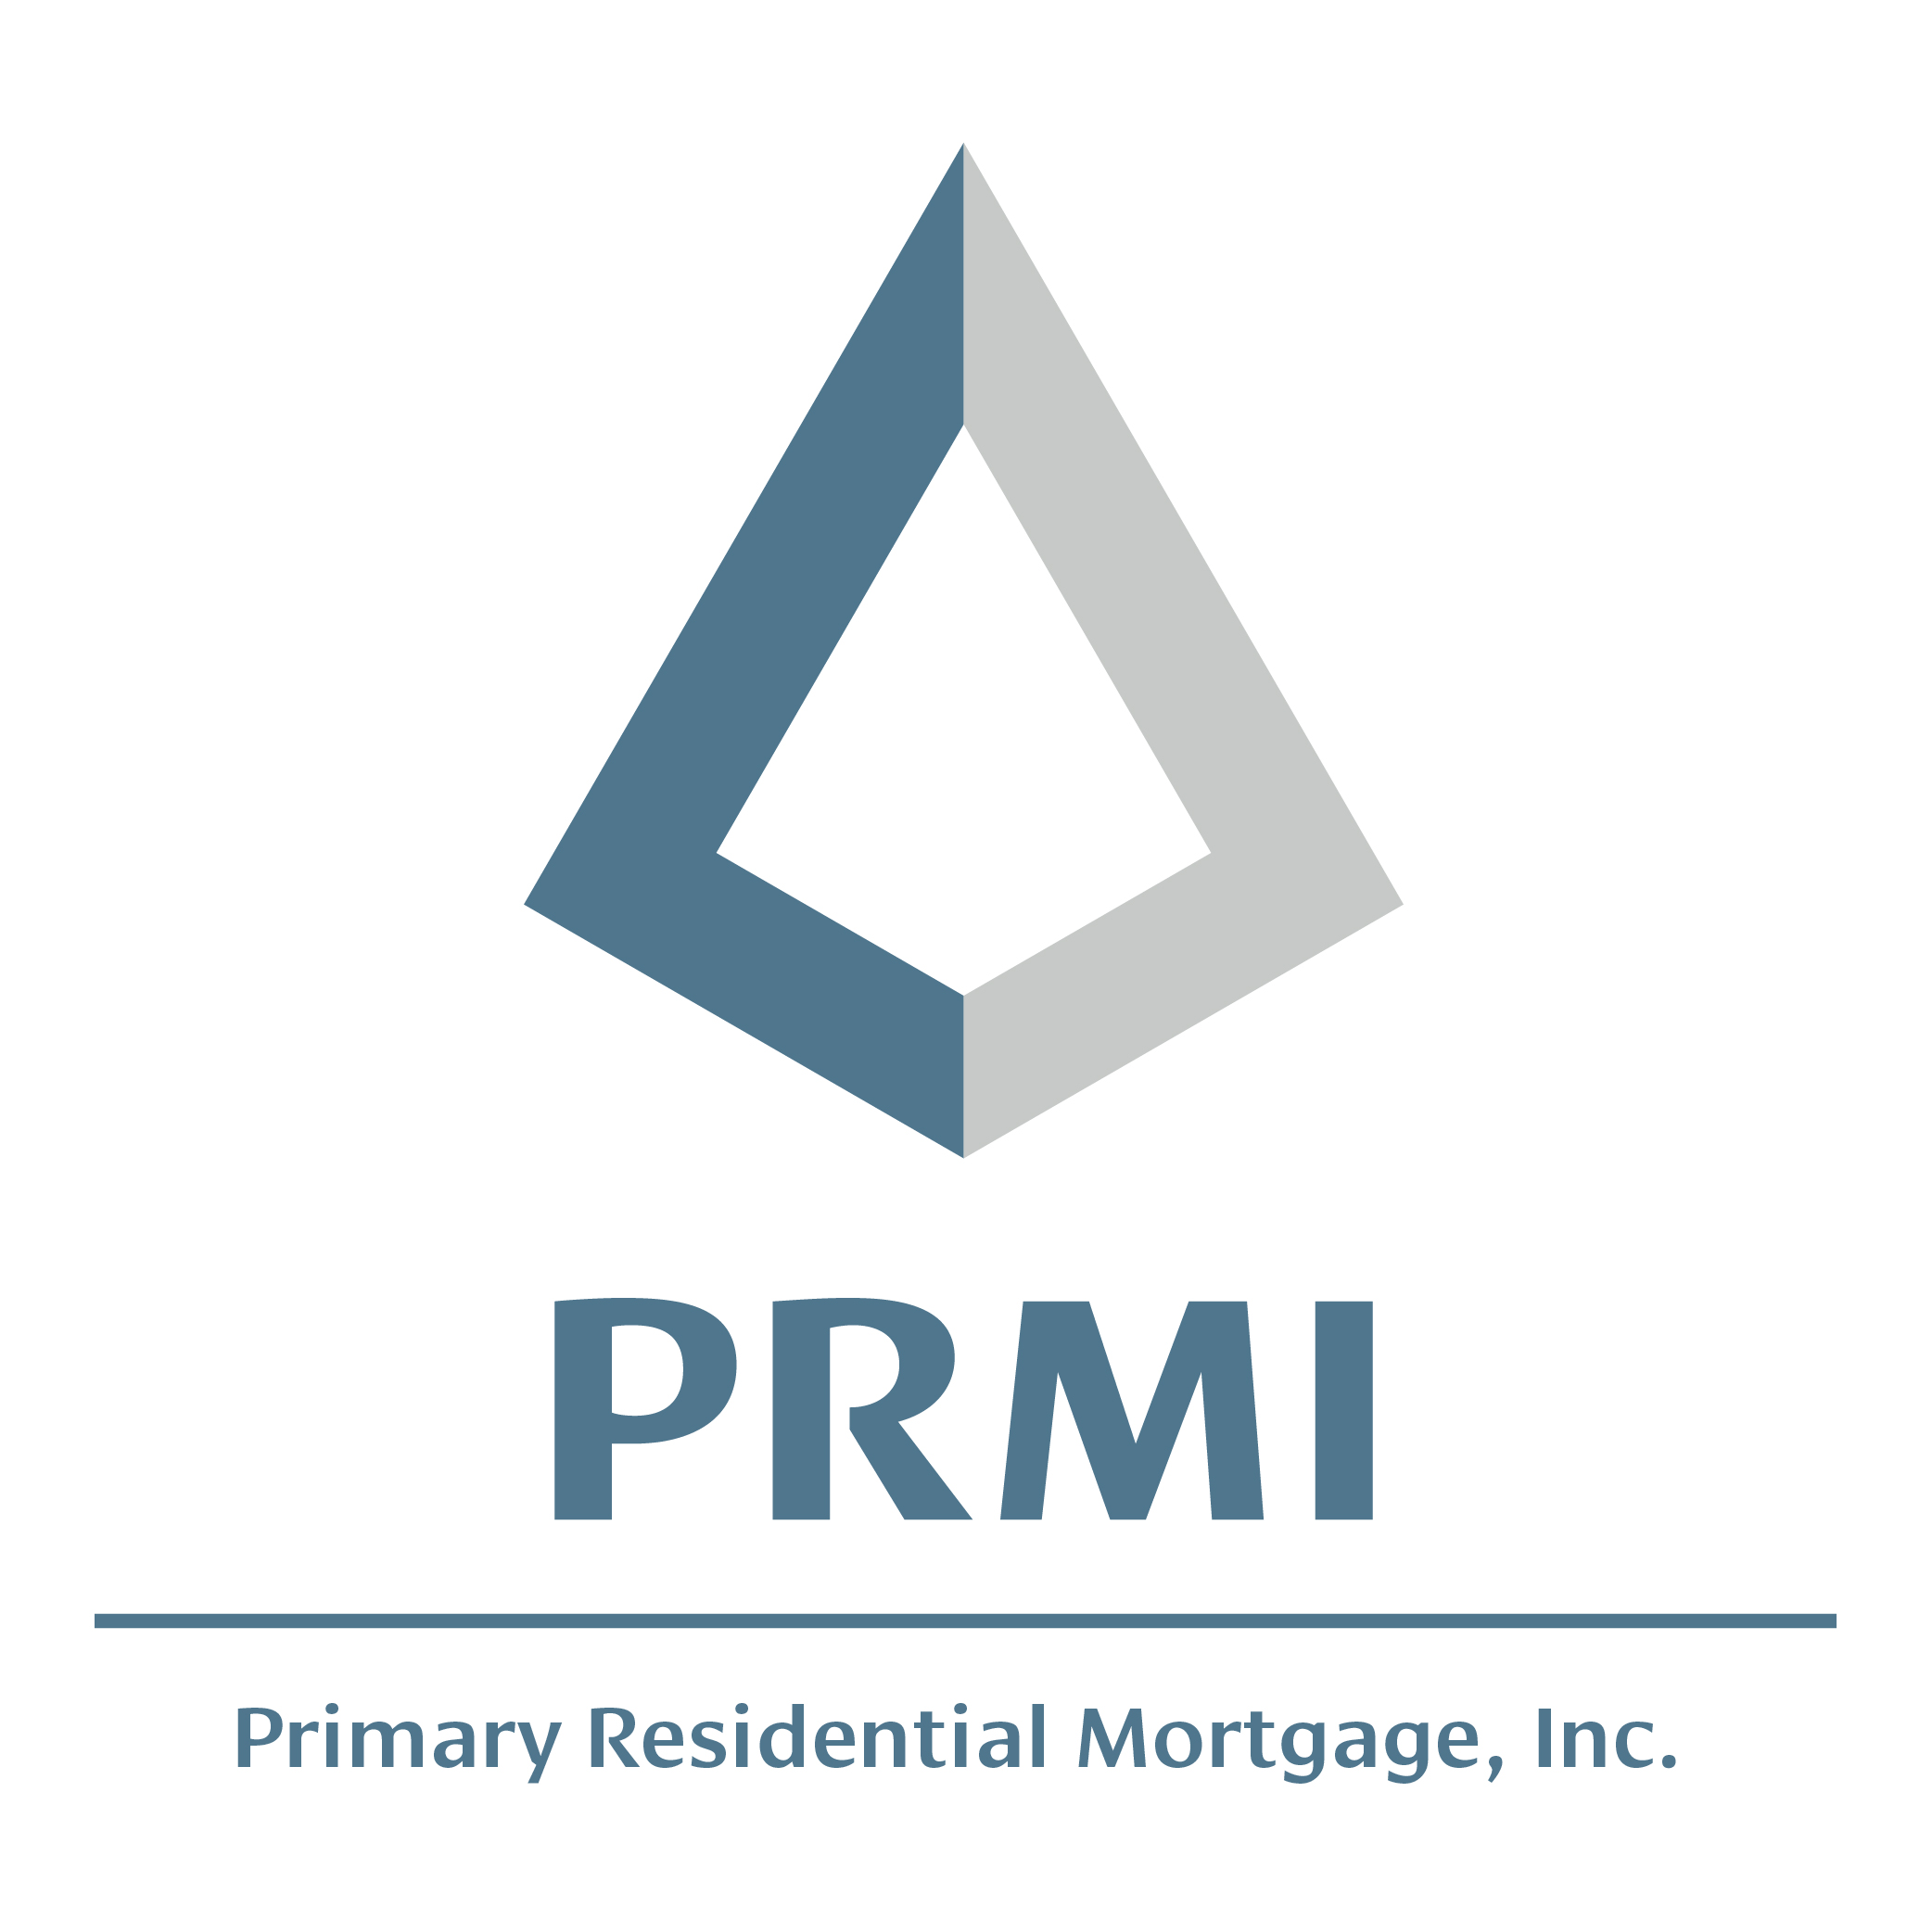 Primary Residential Mortgage, Inc. - Oakdale, CA 95361 - (209)480-3303 | ShowMeLocal.com